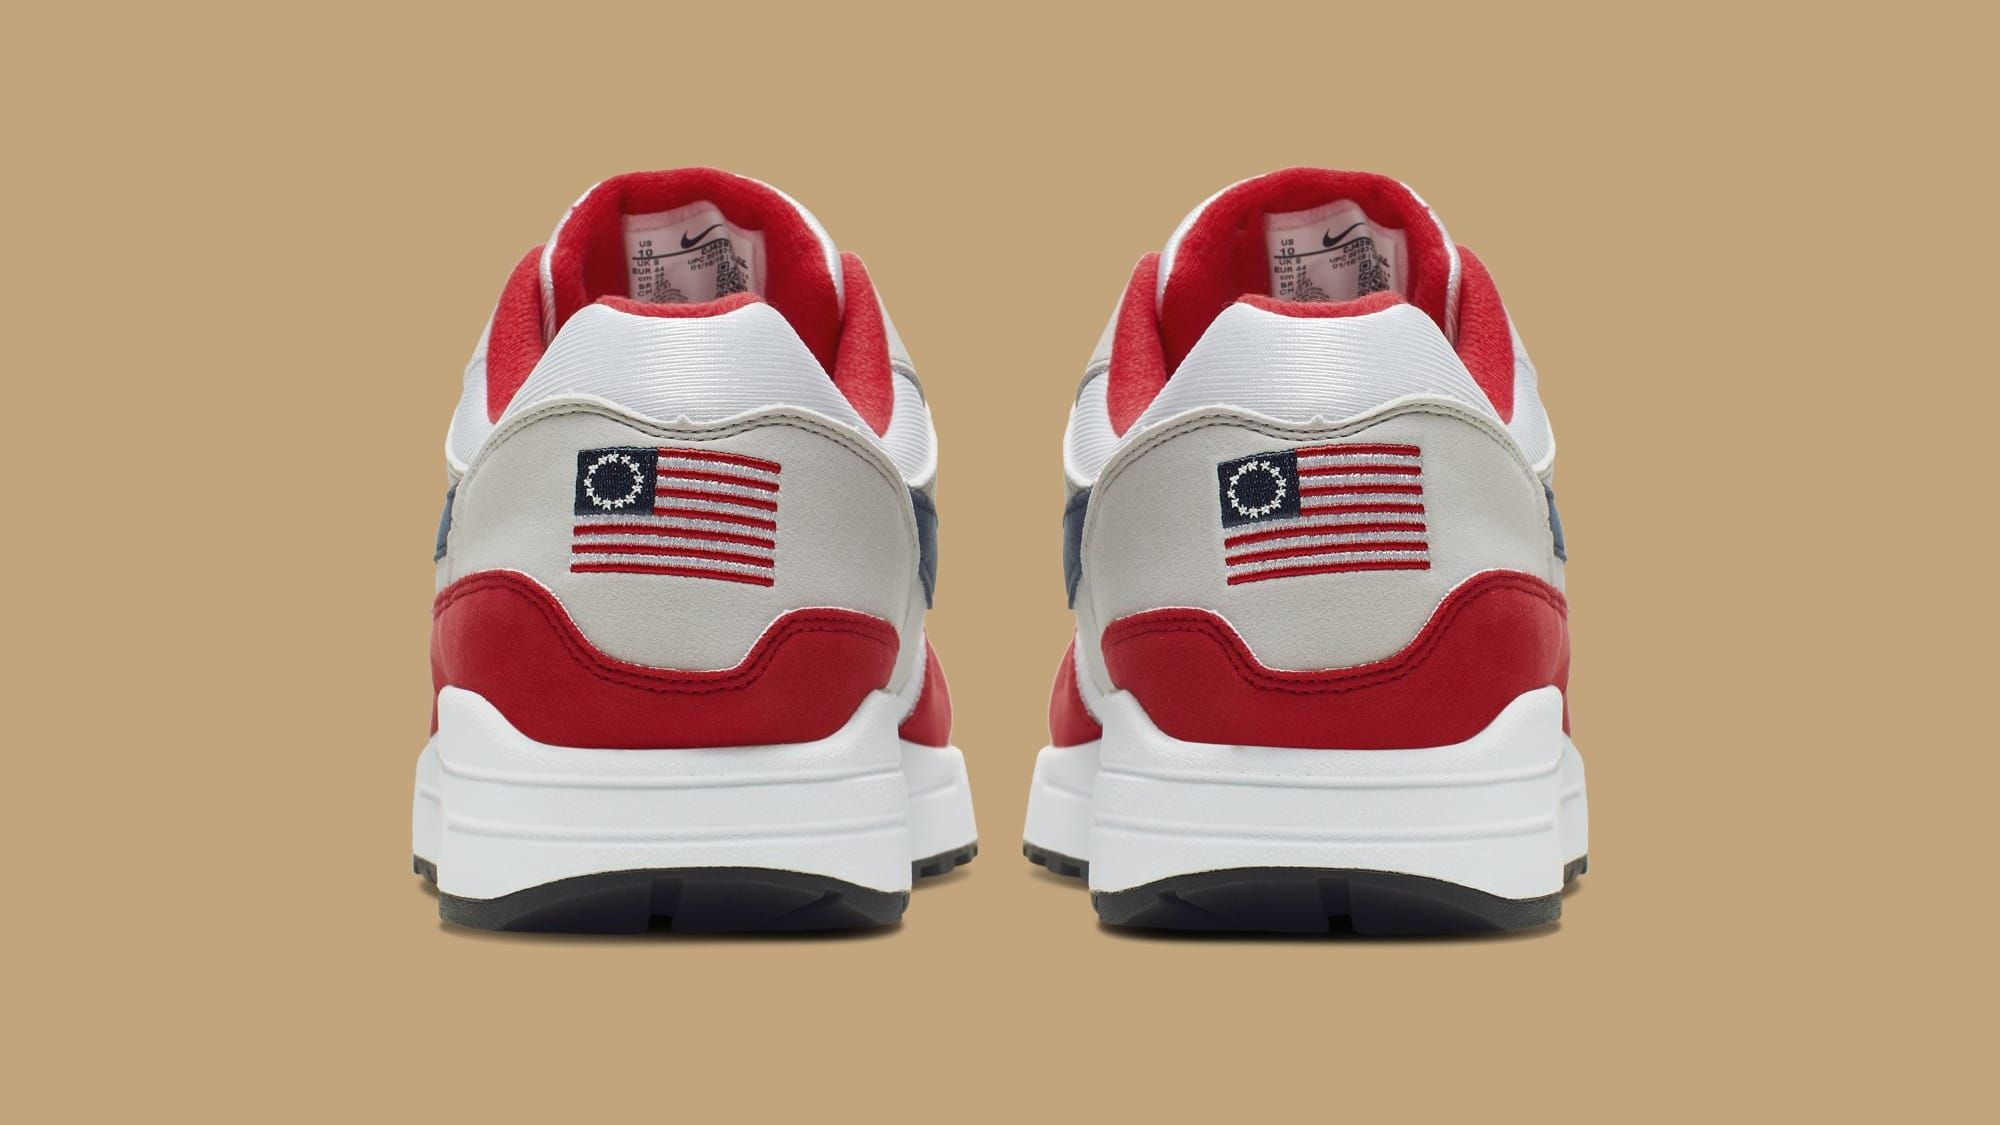 Nike CEO Mark Parker Explains Why They Pulled the Betsy Ross